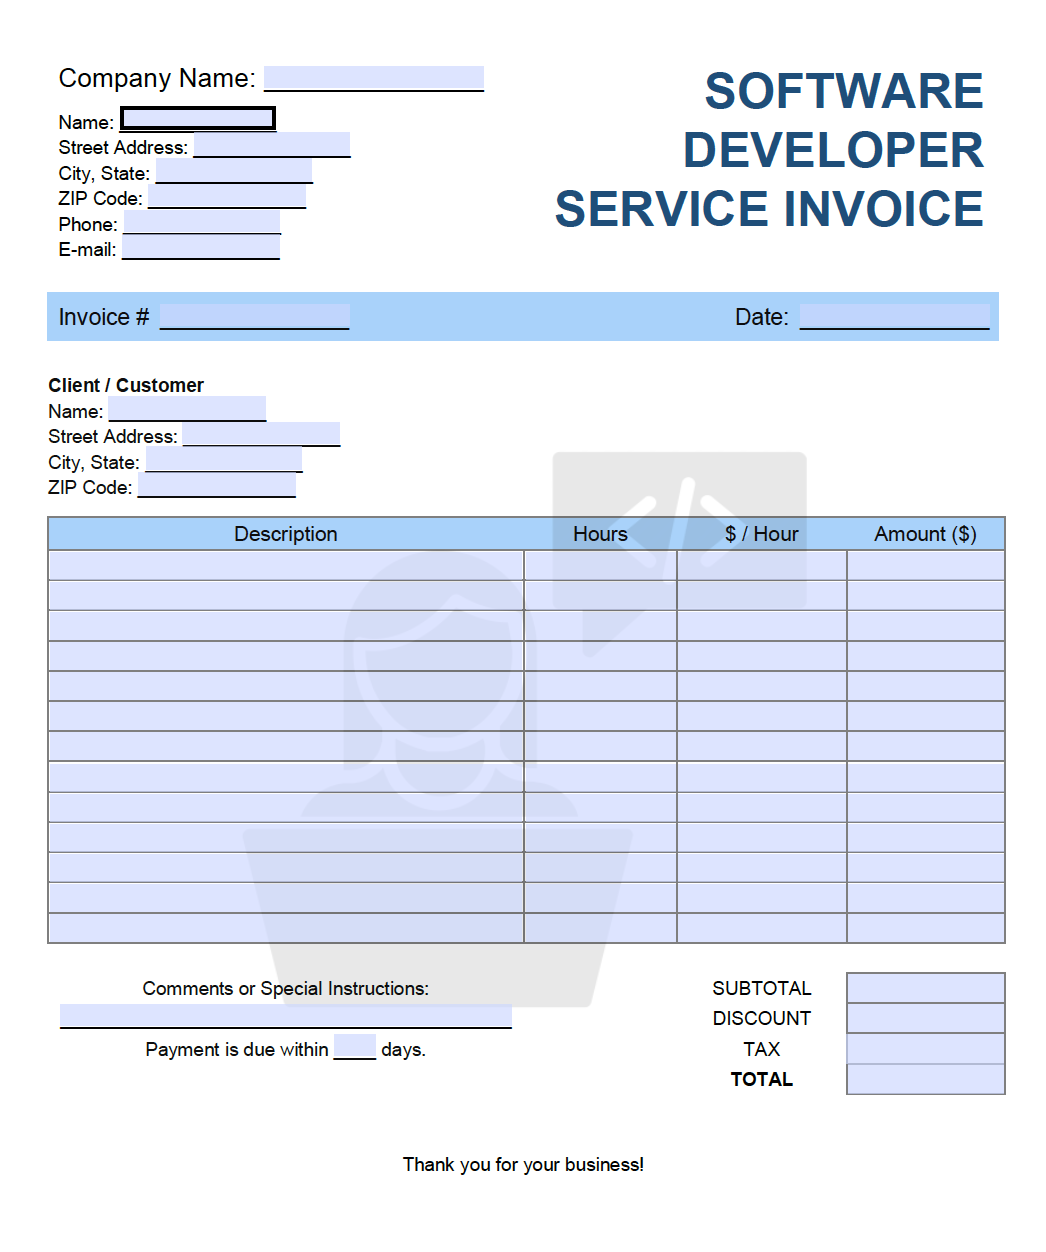 Free Software Developer Service Invoice Template Pdf Word Excel